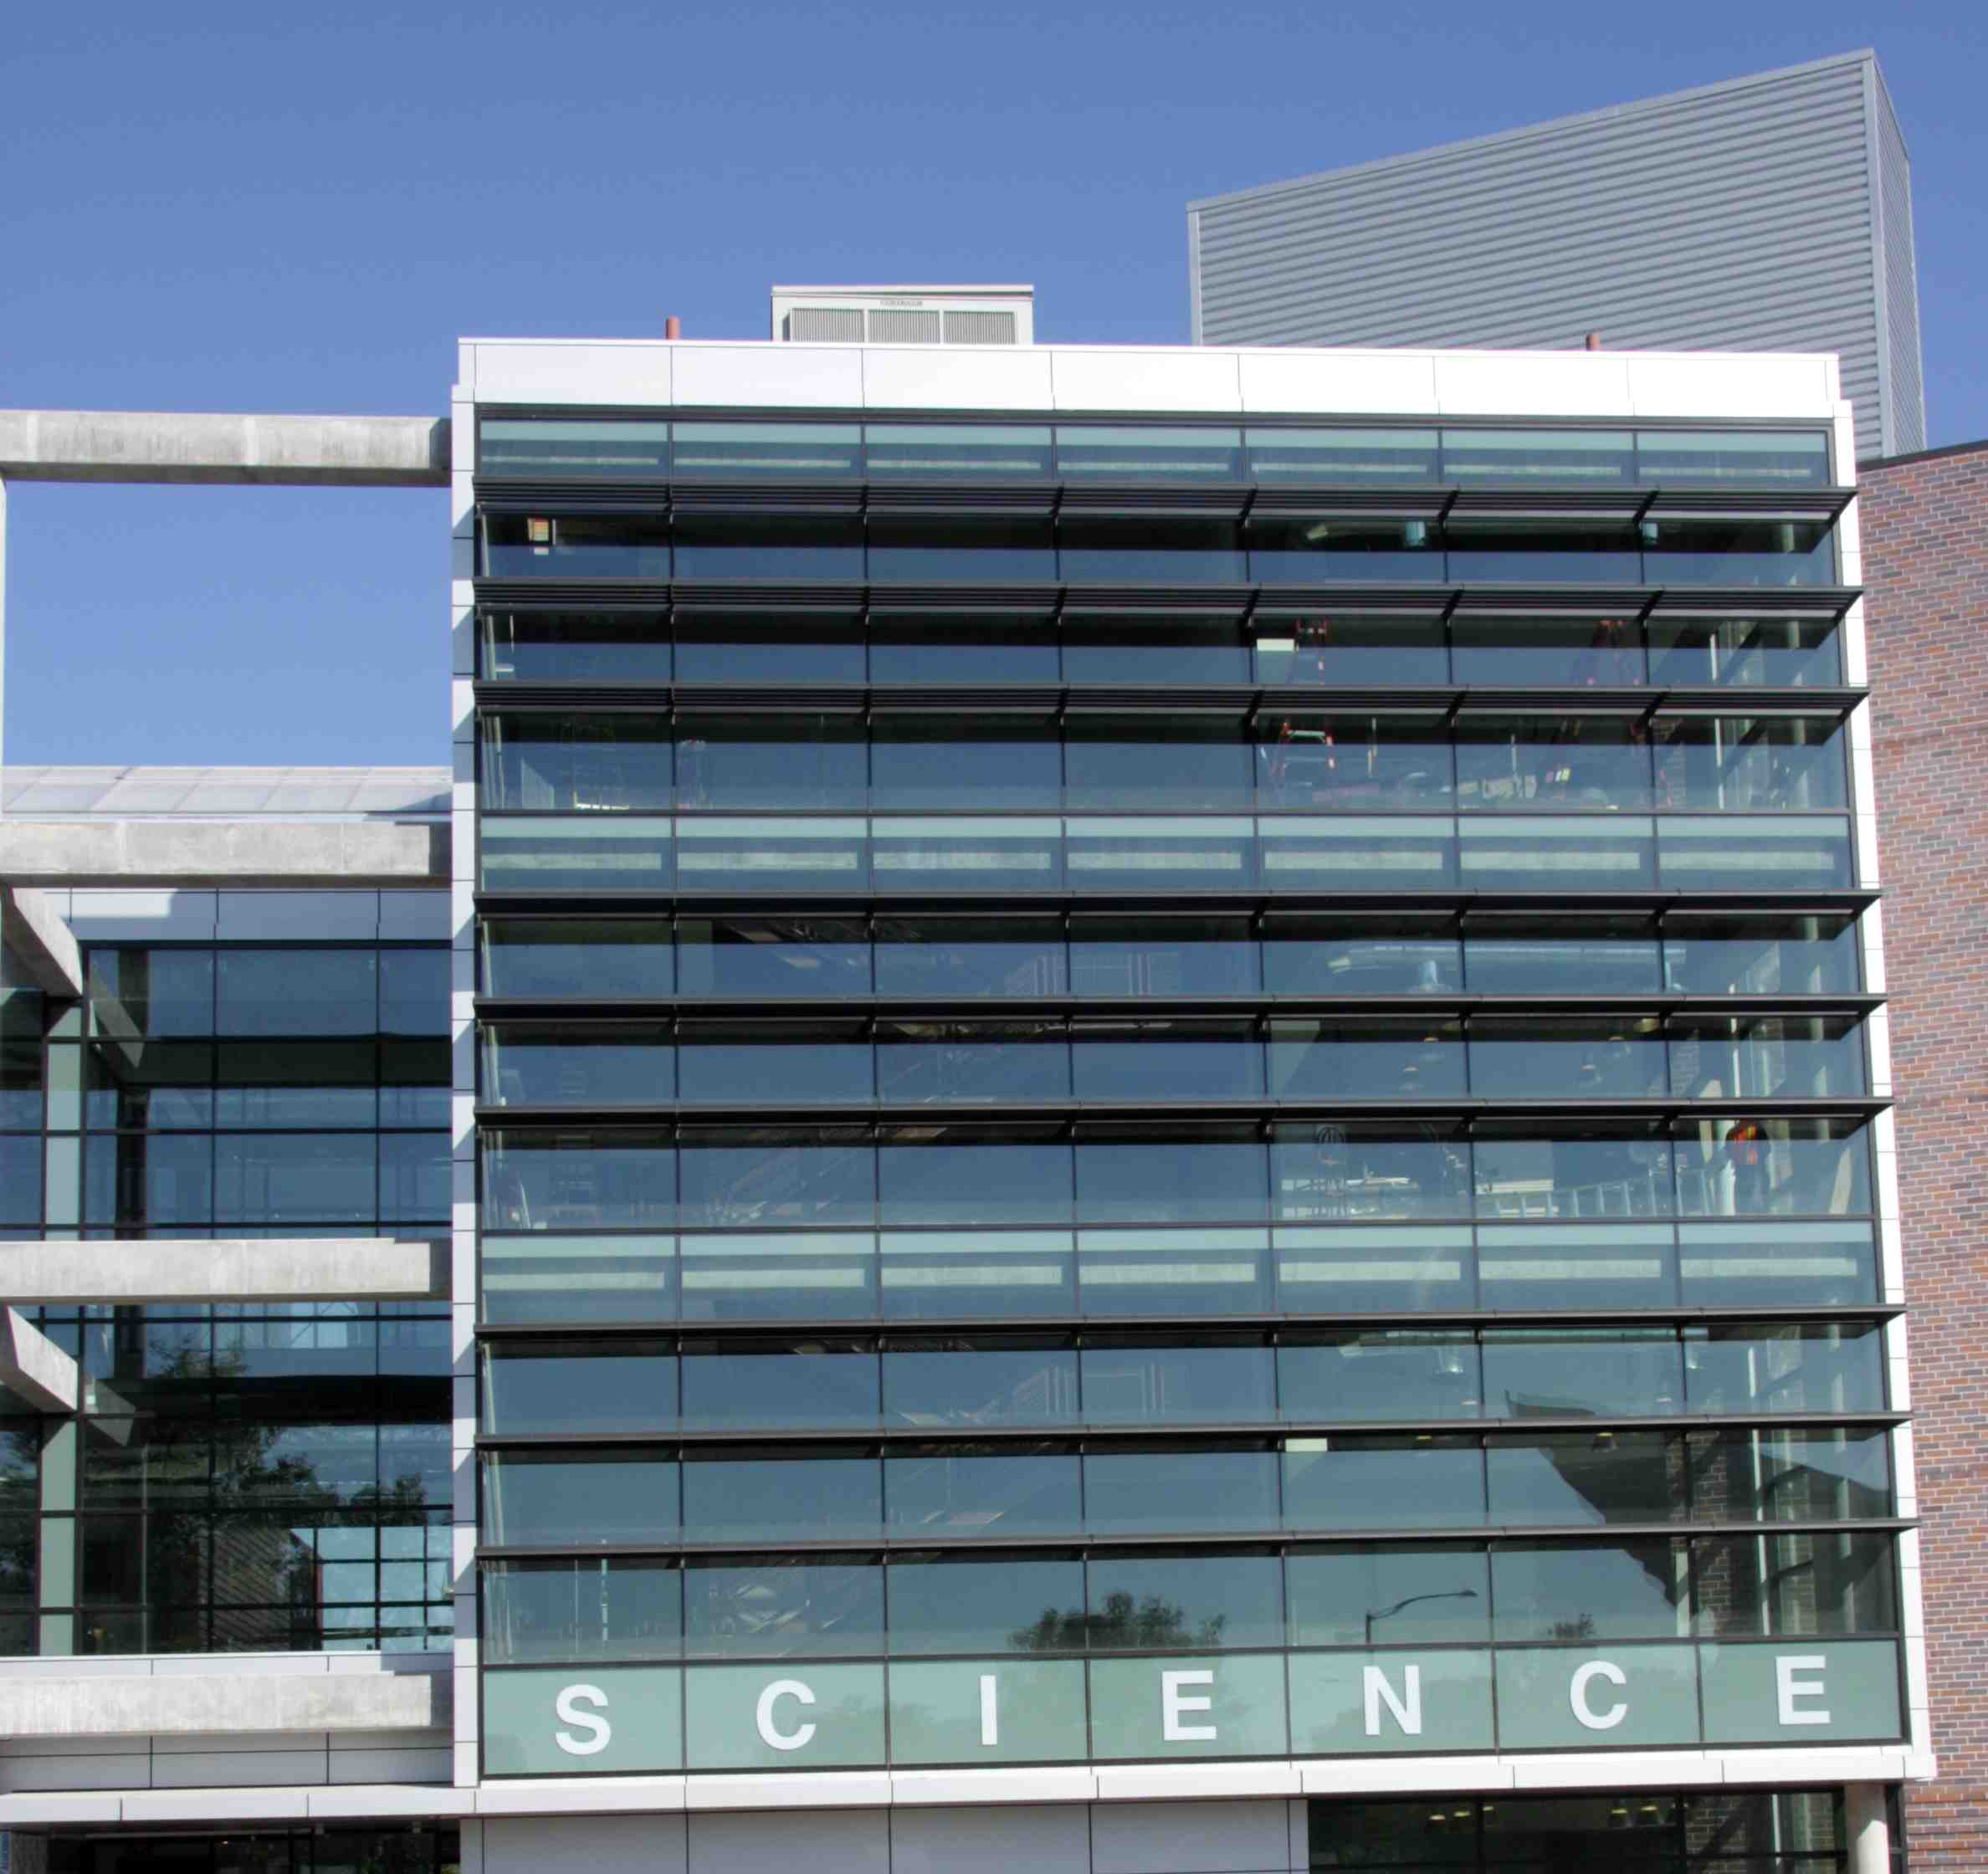 Wall Design Build Inc : Auraria science building blends beauty technology to